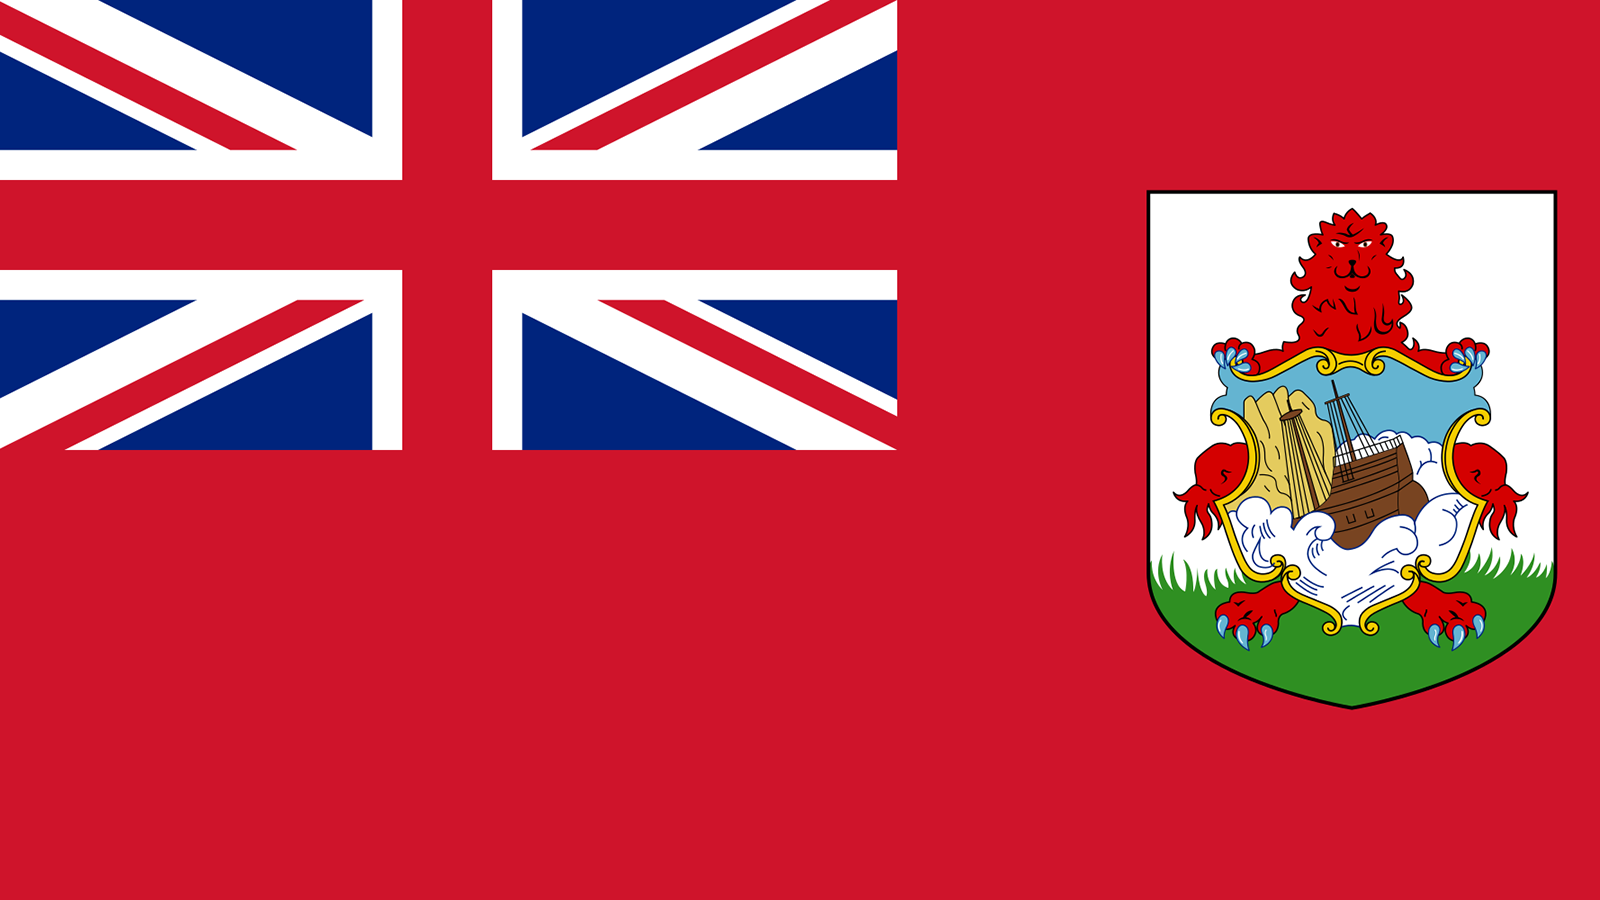 BREAKING: Bermuda Supreme Court Rules in Favor of Marriage Equality